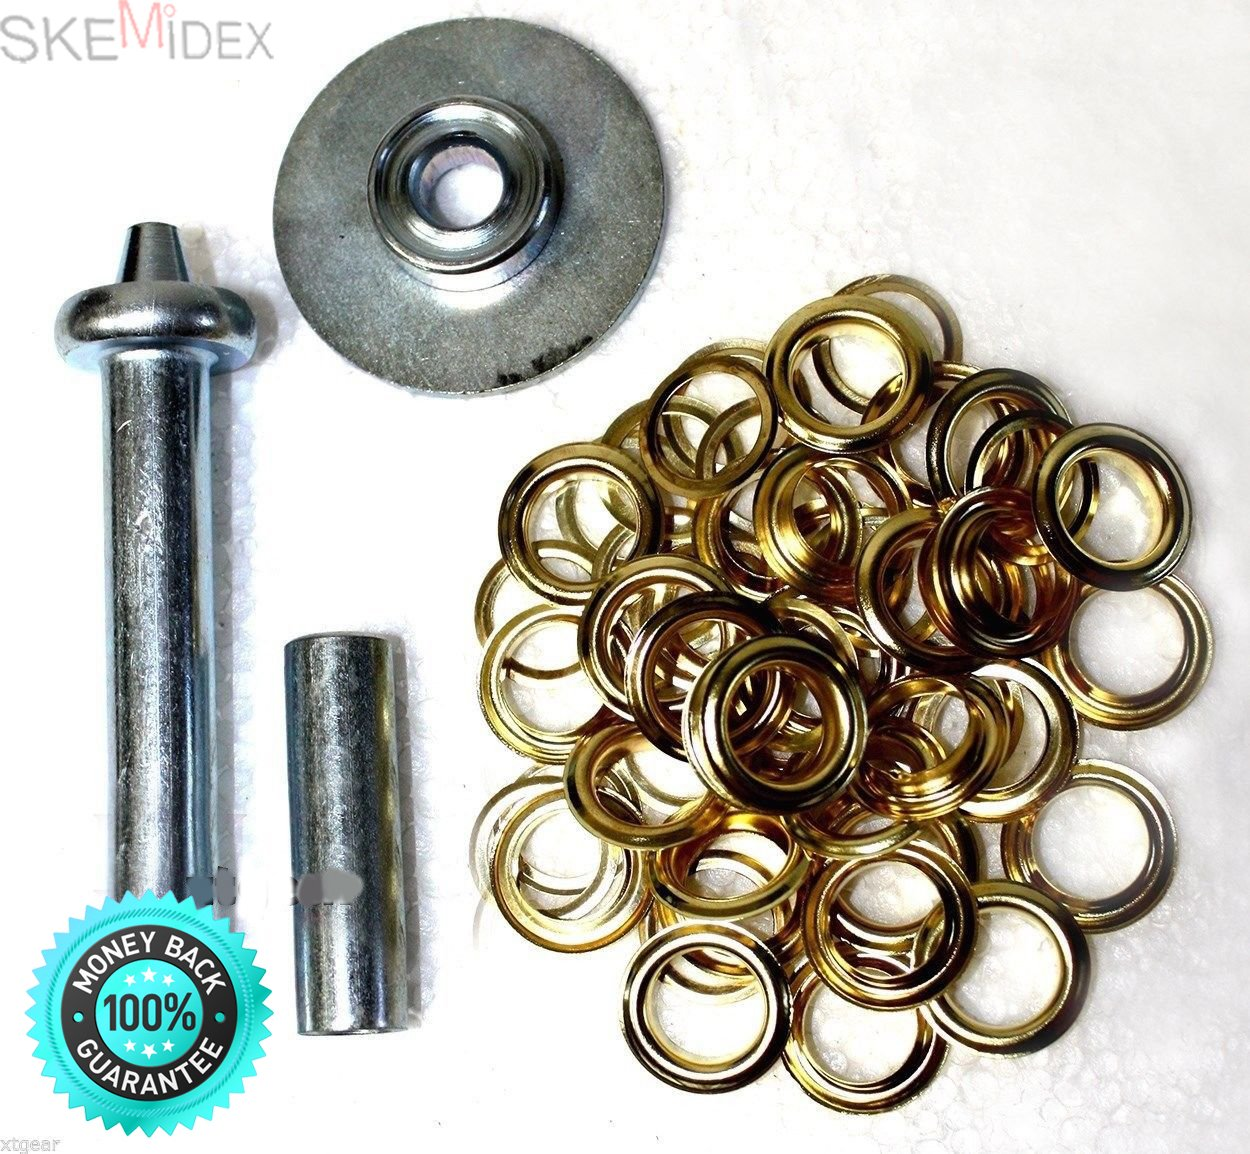 SKEMiDEX---60Pc X 1/2'' Grommet Punch Installation Kit With Brass Set Tarps Tool. For tents, sleeping bags, tarpaulins, awnings, pool covers, and many other Items using grommetted Construction